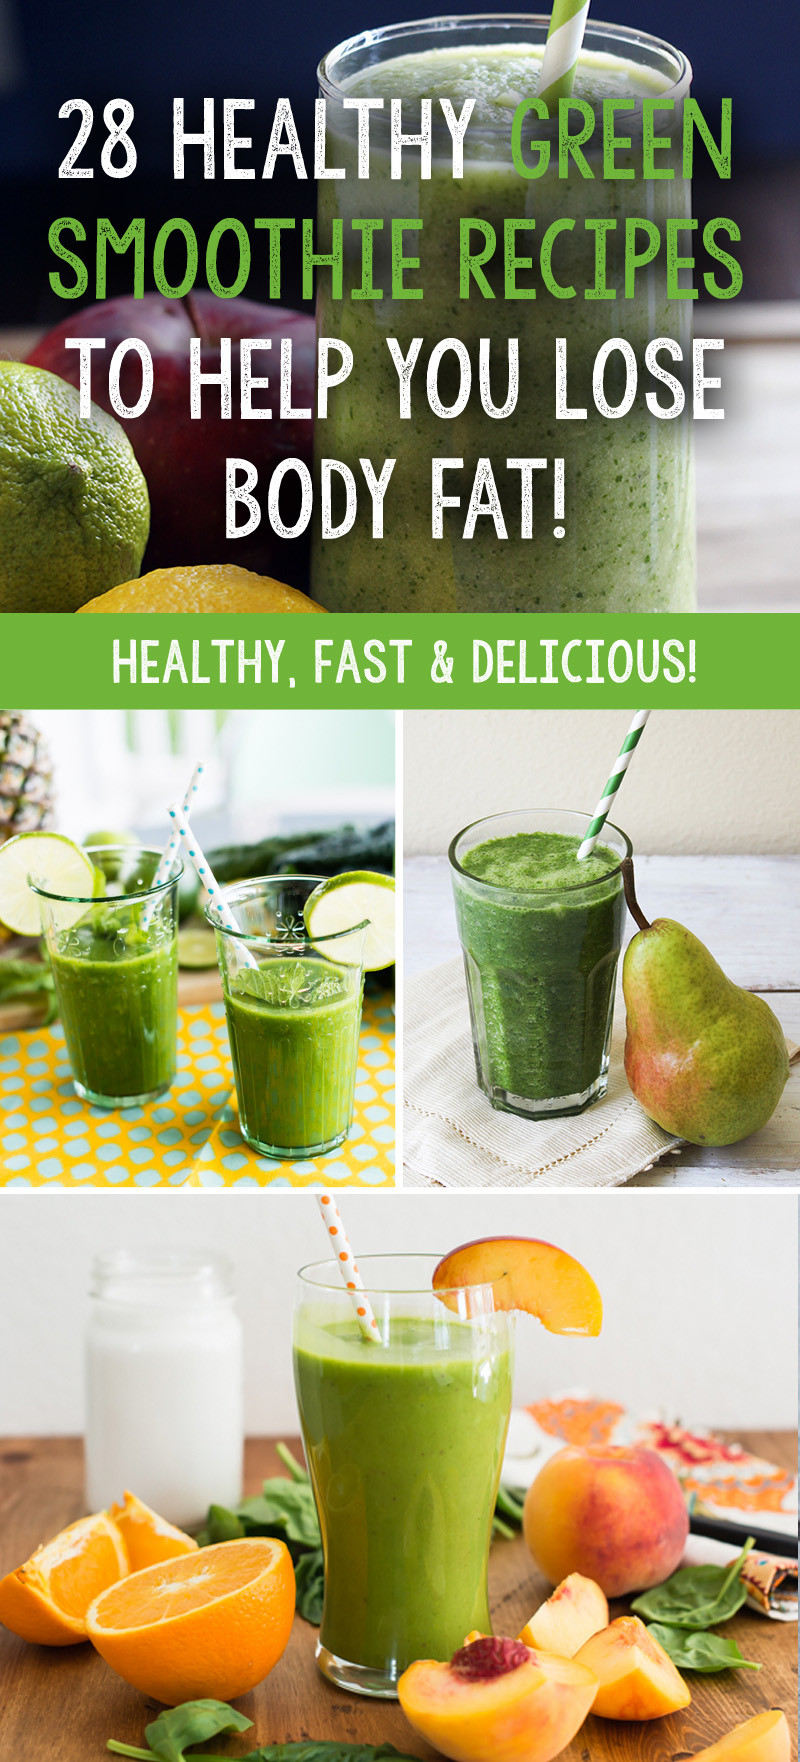 Are Green Smoothies Healthy  28 Healthy Green Smoothie Recipes To Help You Lose Body Fat